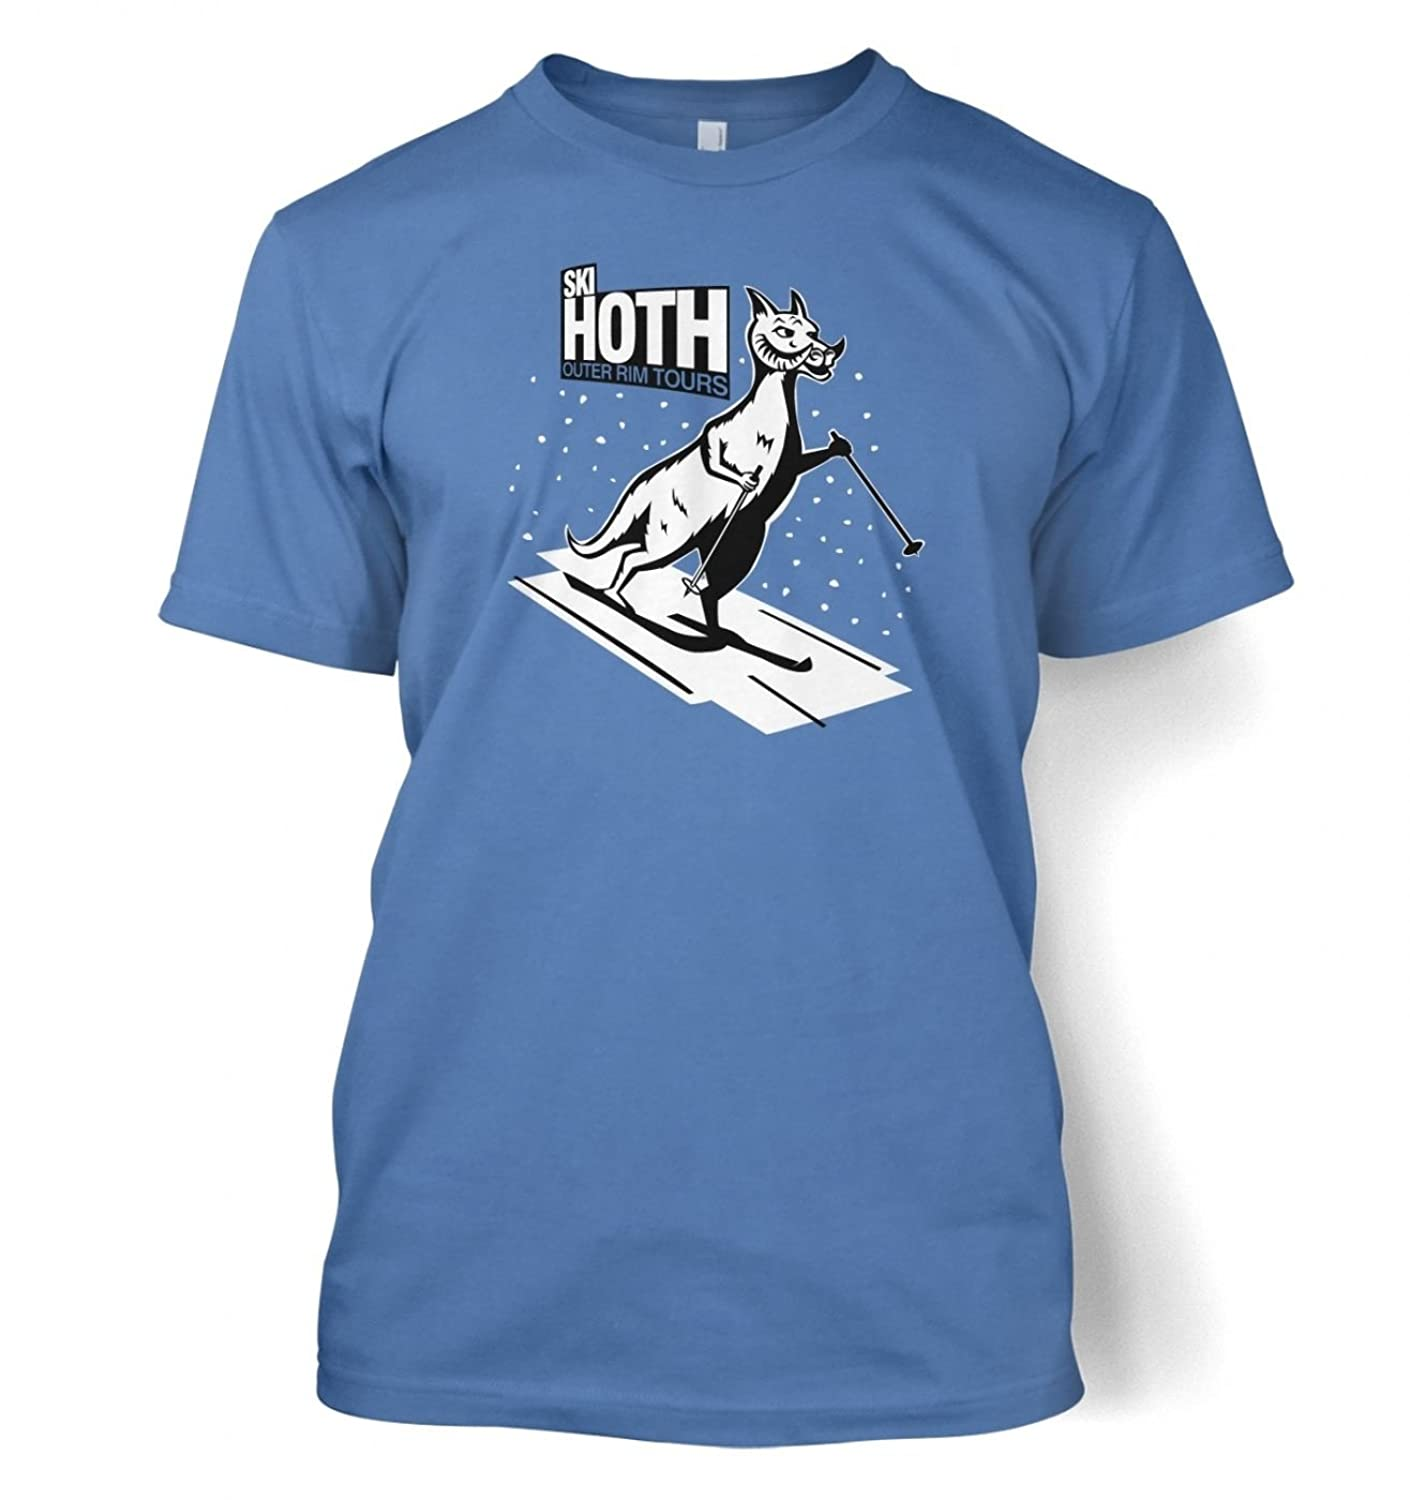 Ski Hoth t-shirt - Inspired by Star Wars